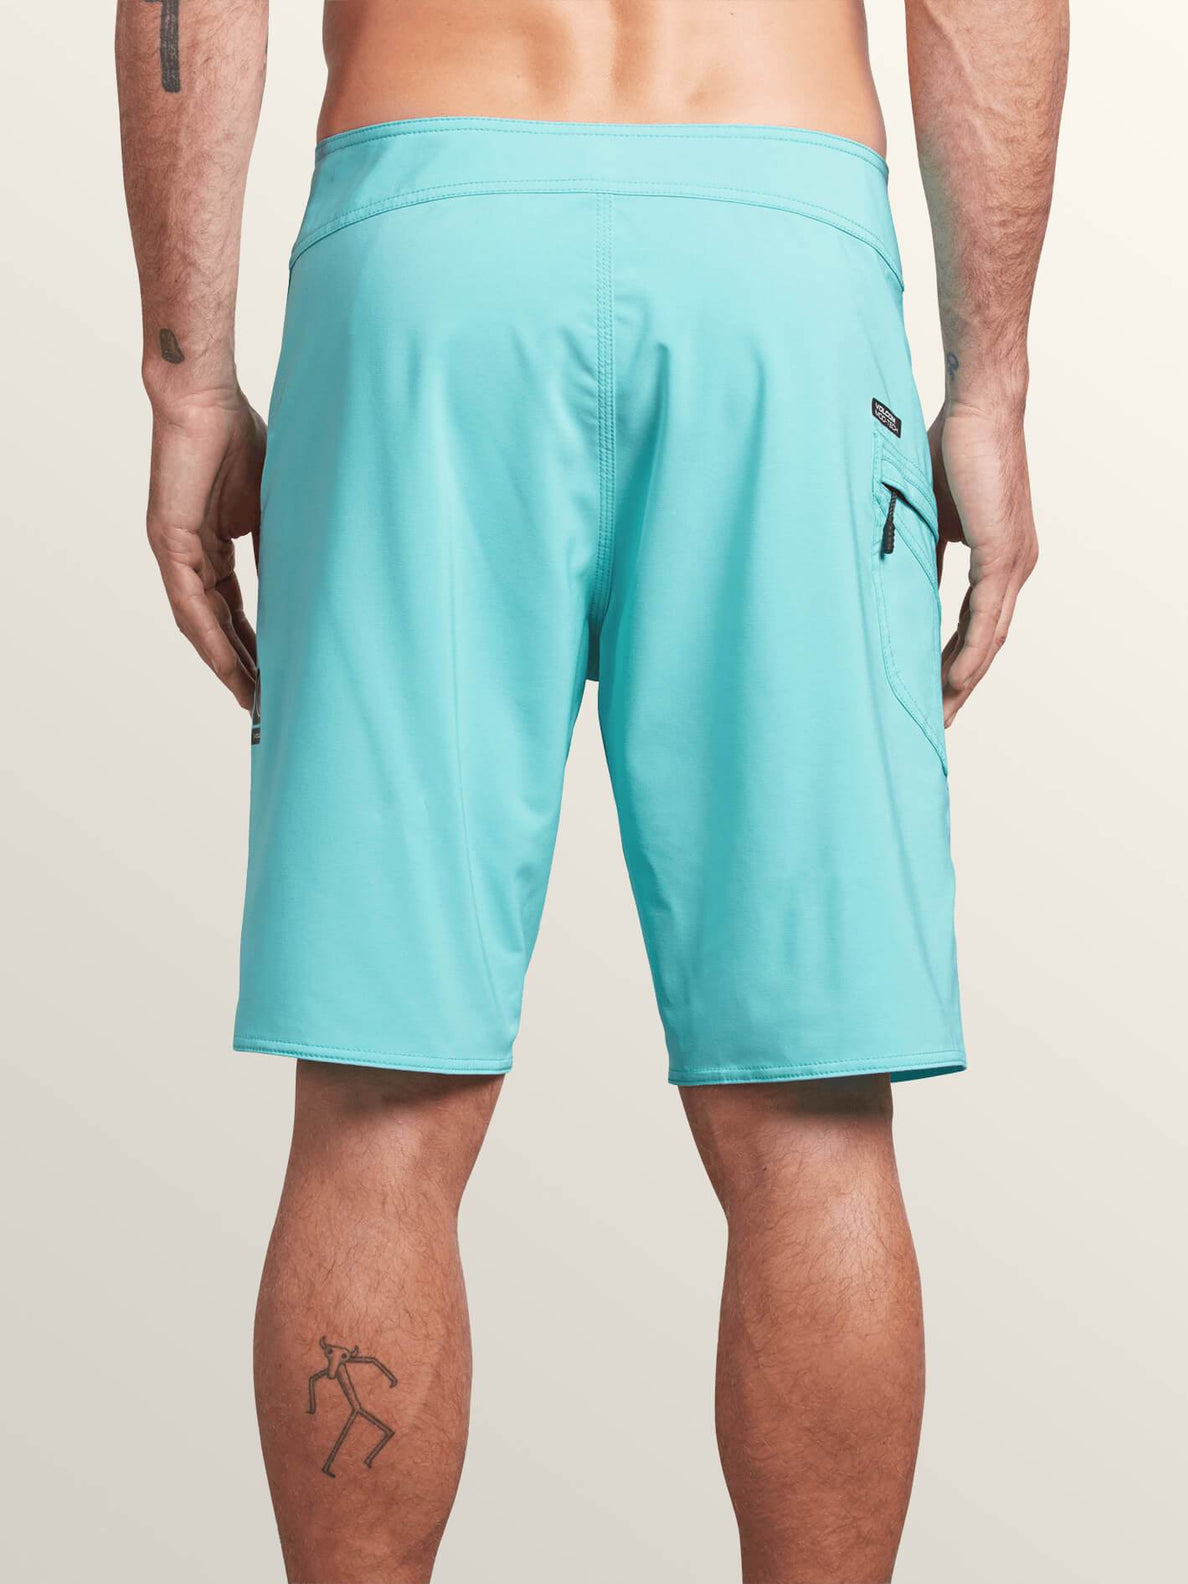 Lido Solid Mod Boardshorts In Bright Turquoise, Back View